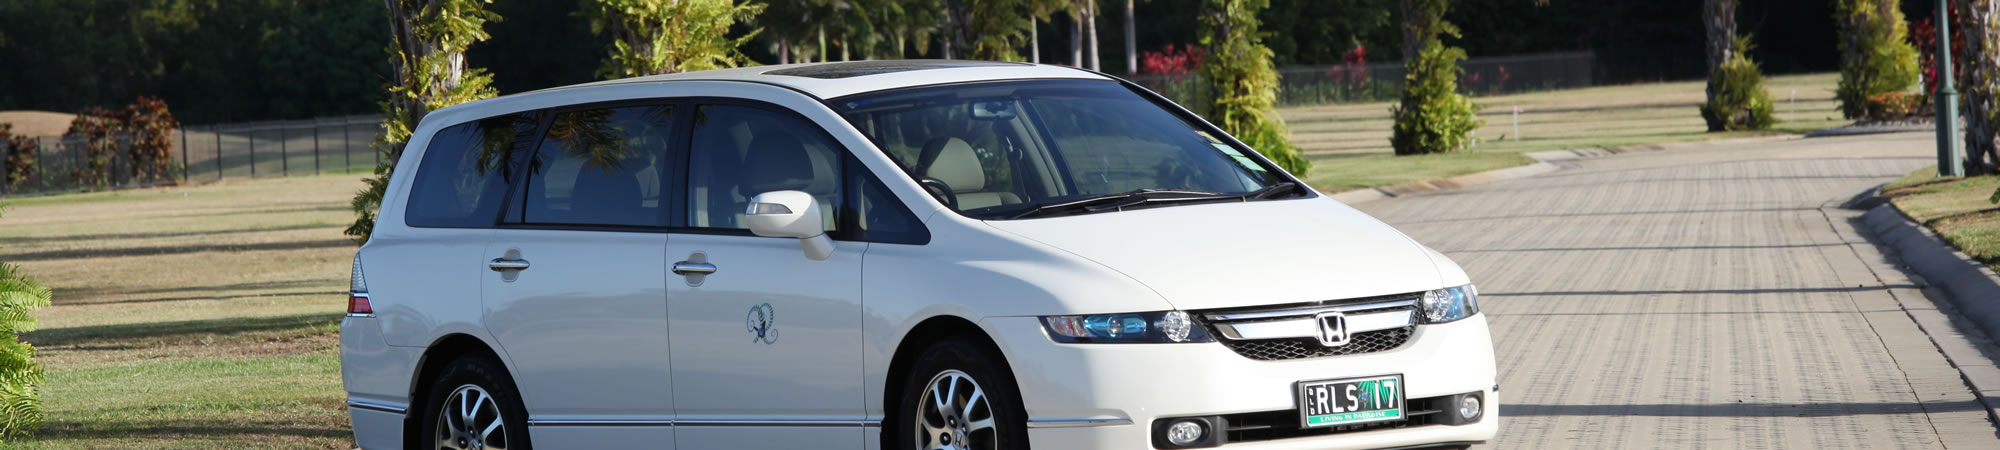 airport transfers port douglas cairns